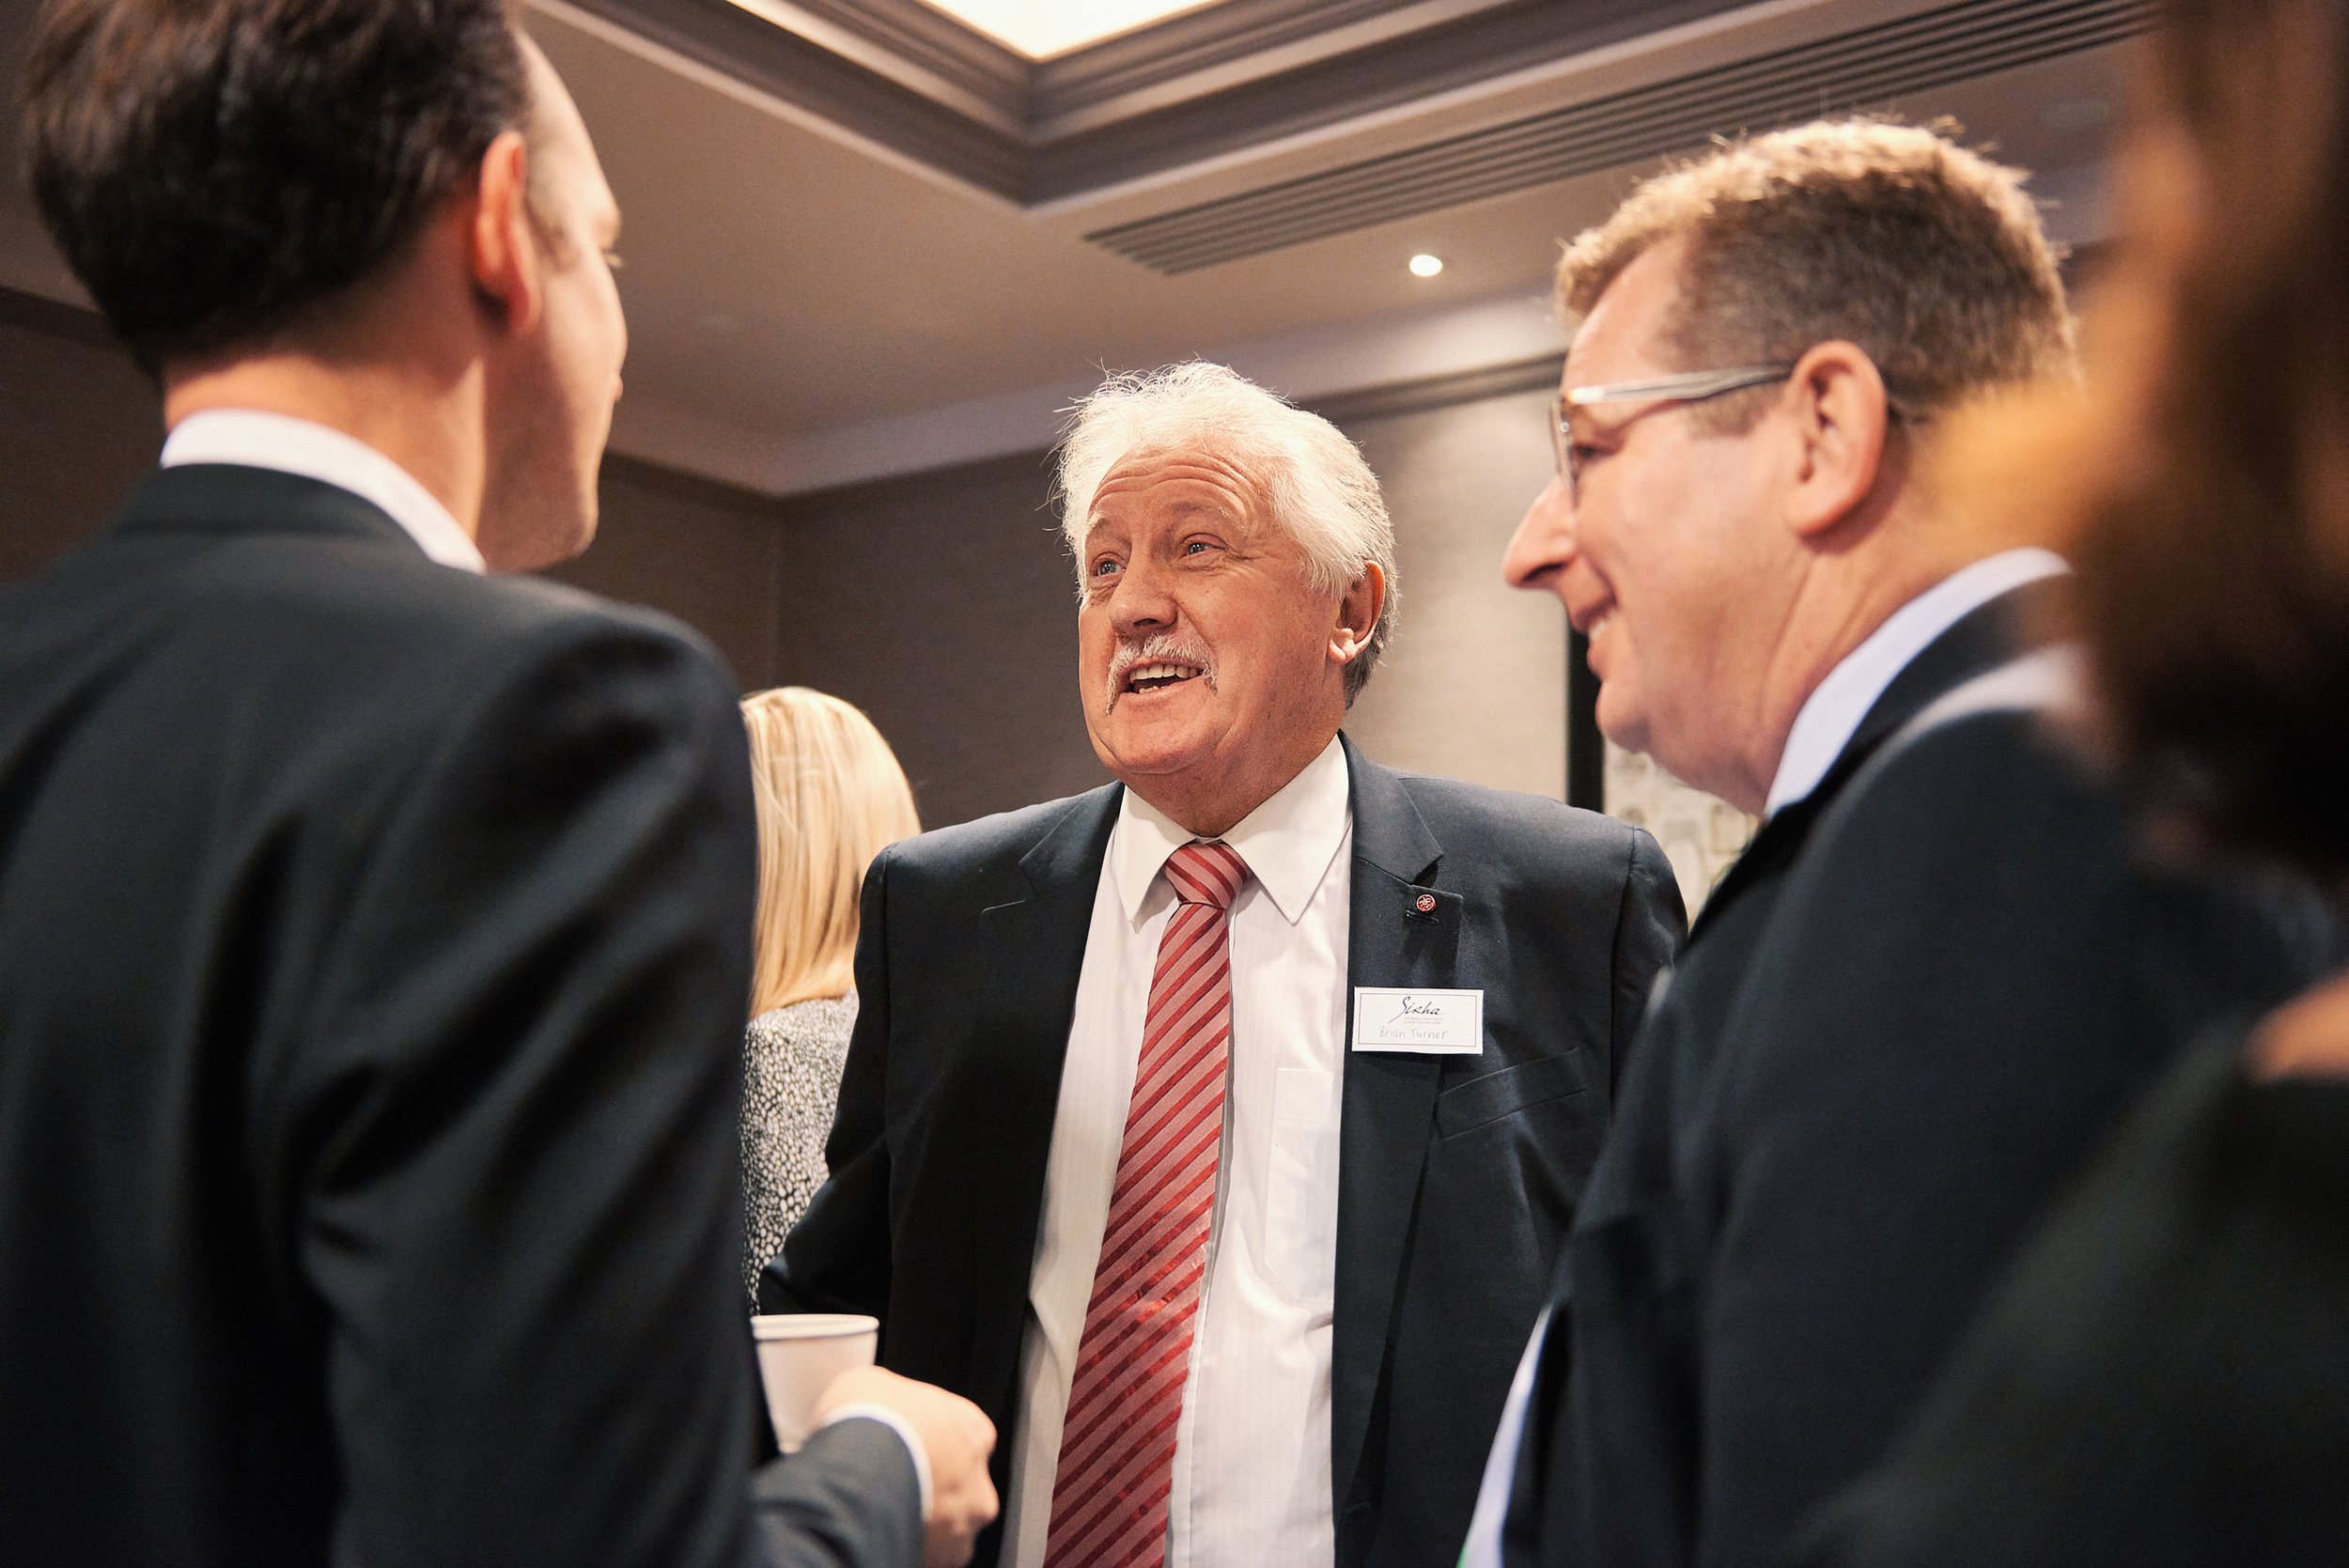 Brian Turner CBE at Monkhouse Event in London